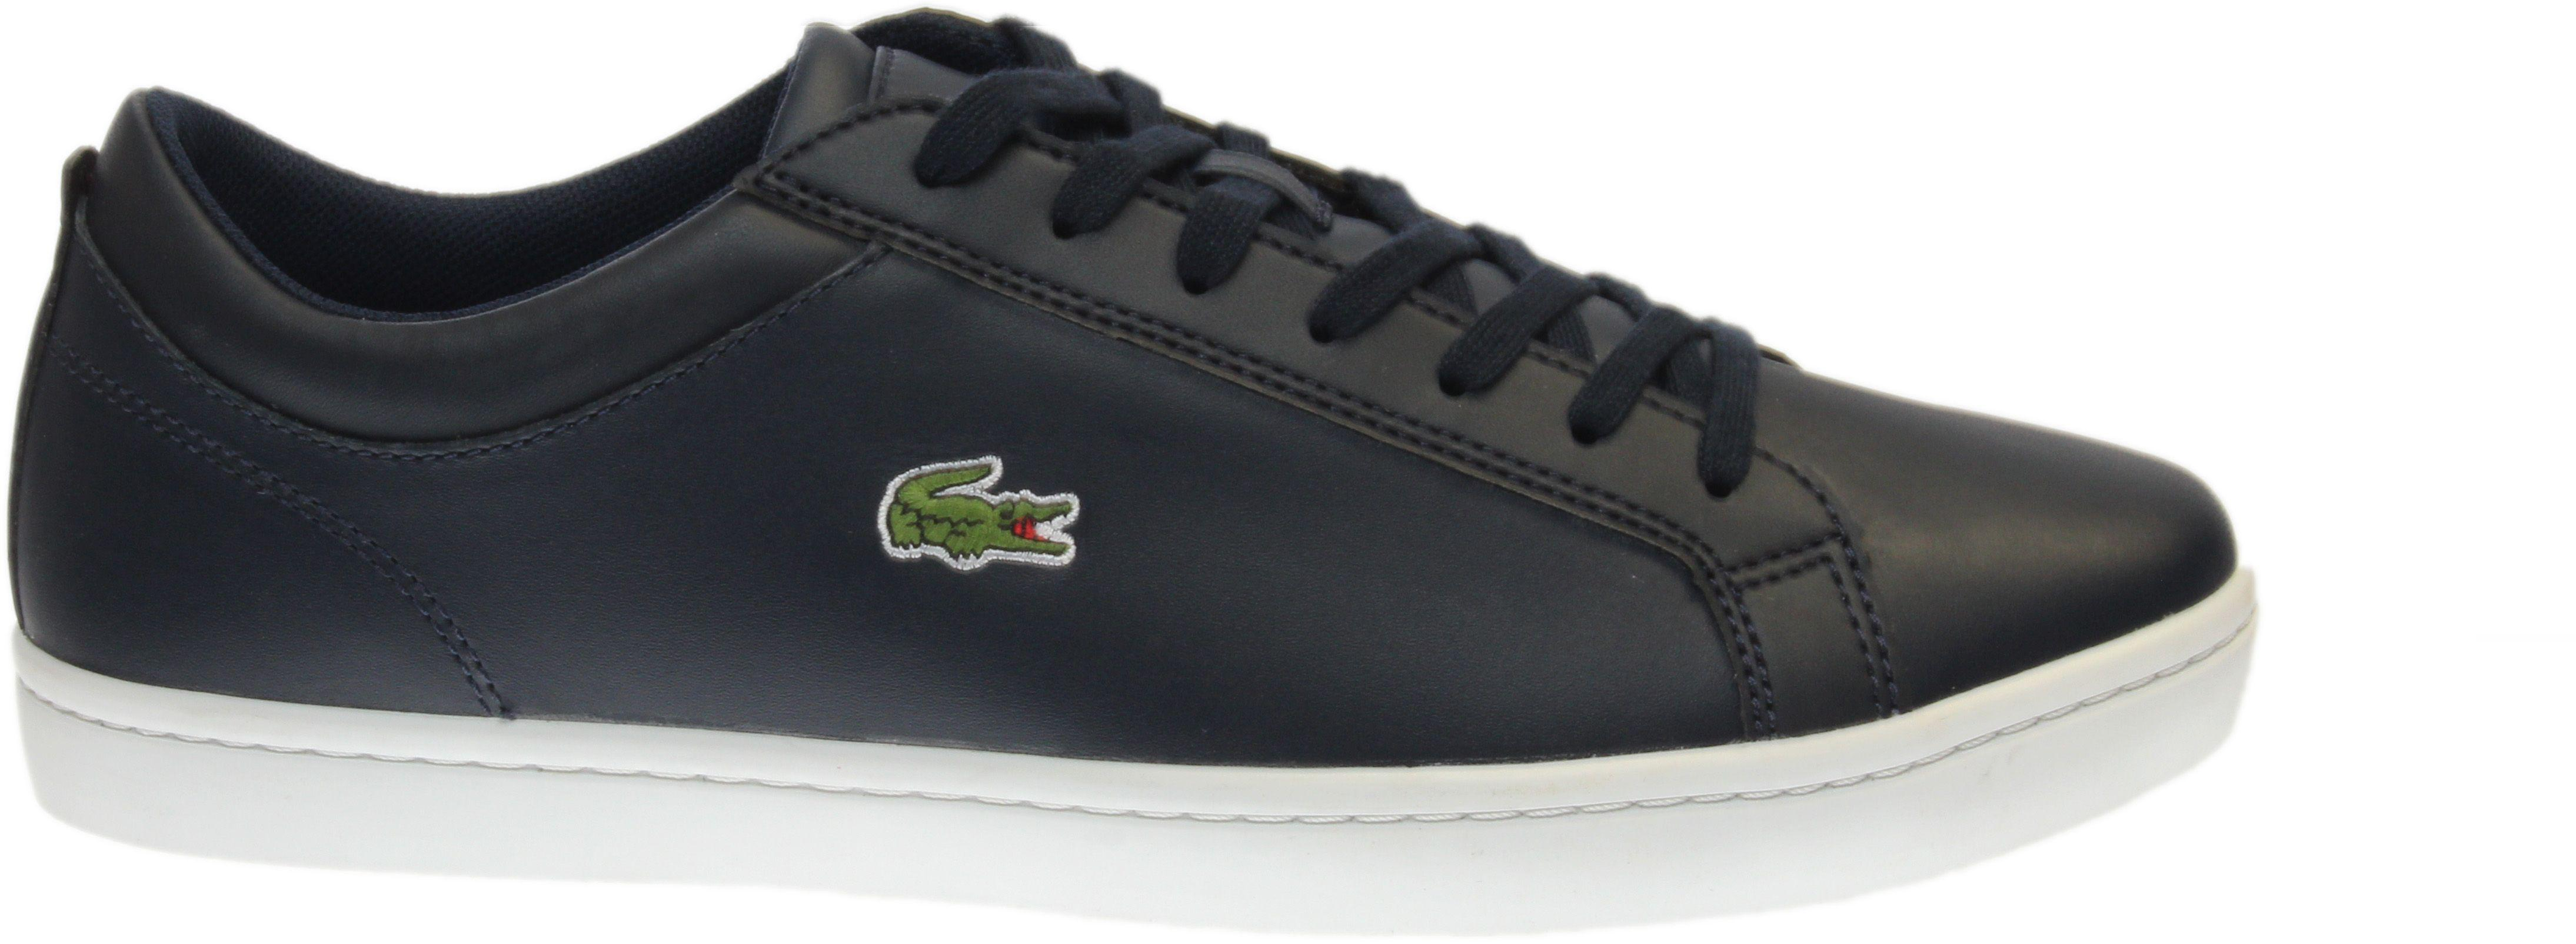 9ee214d49112 Lyst - Lacoste Straightset Bl 1 Cam in Blue for Men